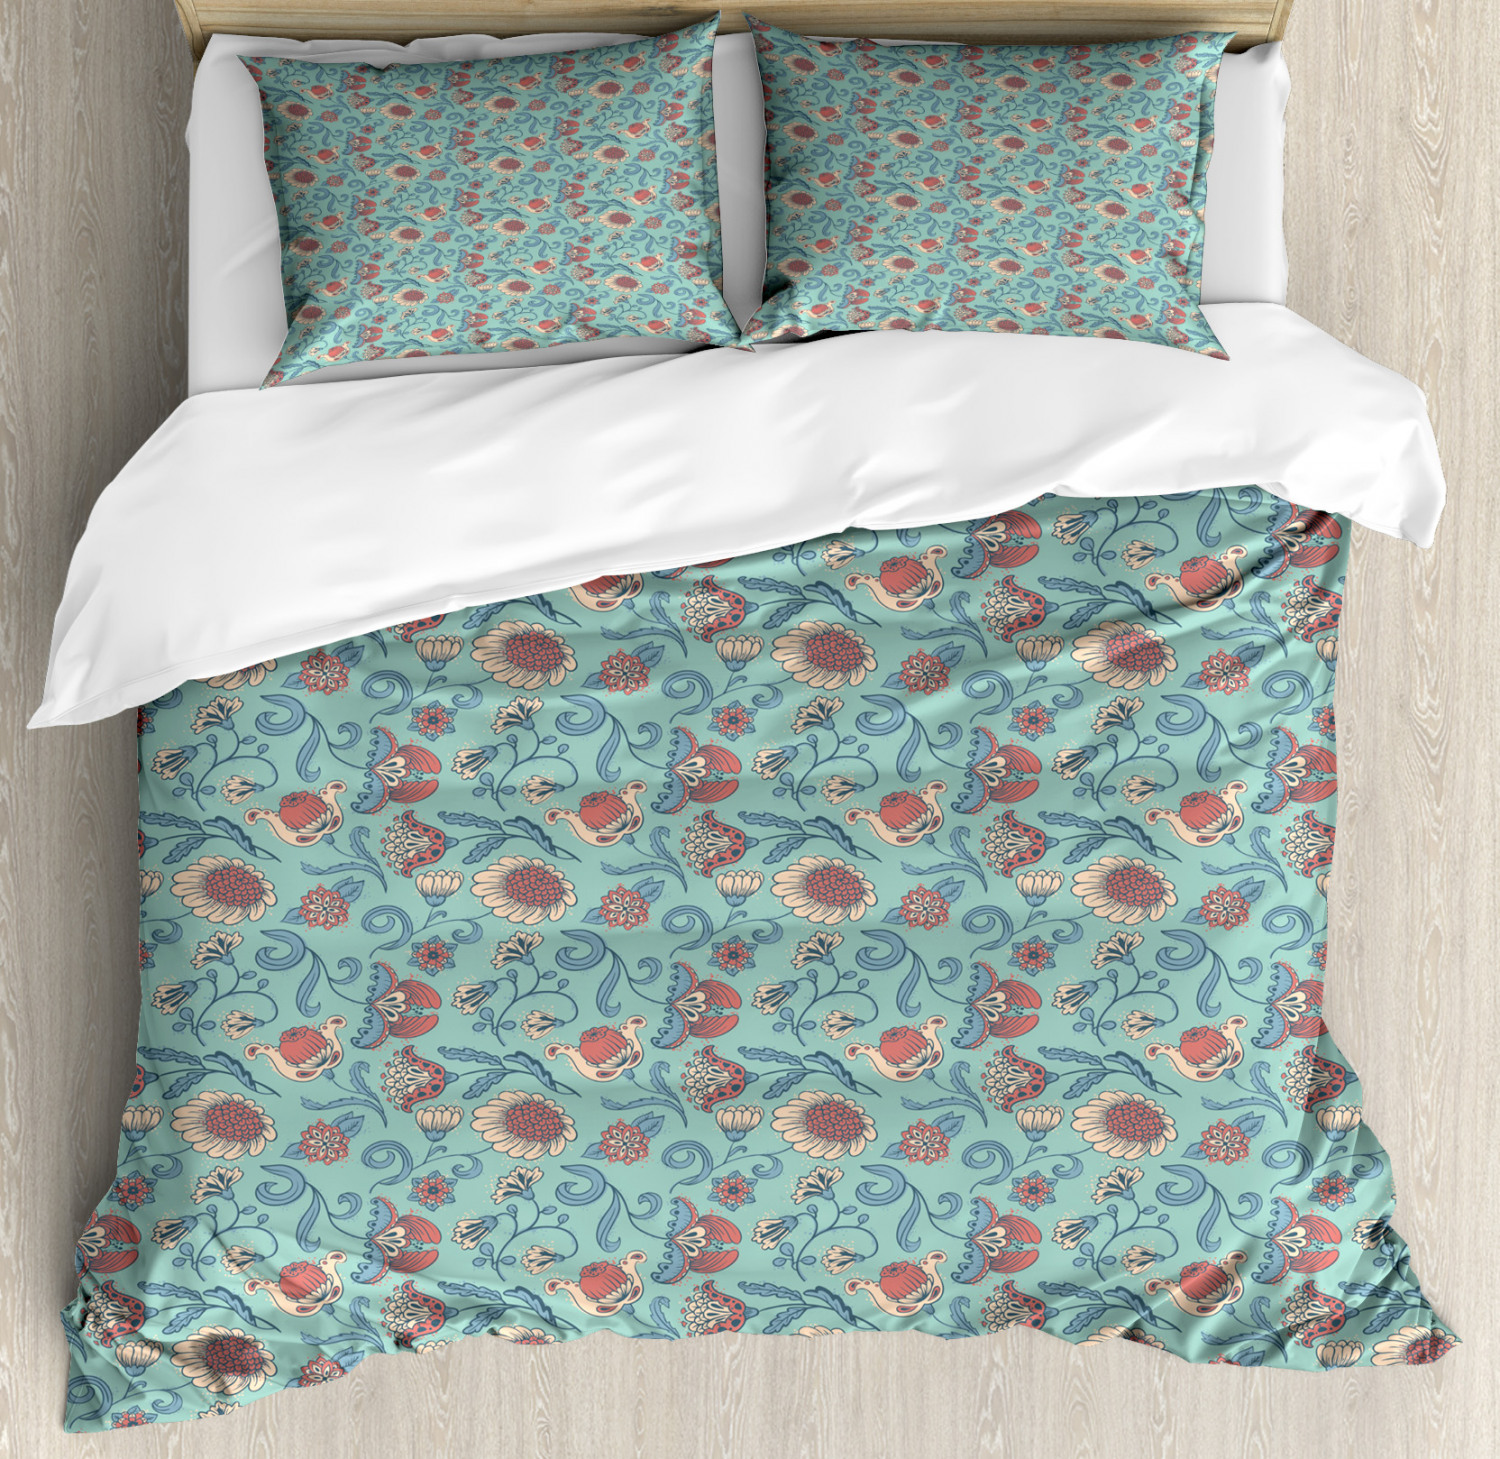 Aqua And Coral Duvet Cover Set Twin Queen King Sizes With